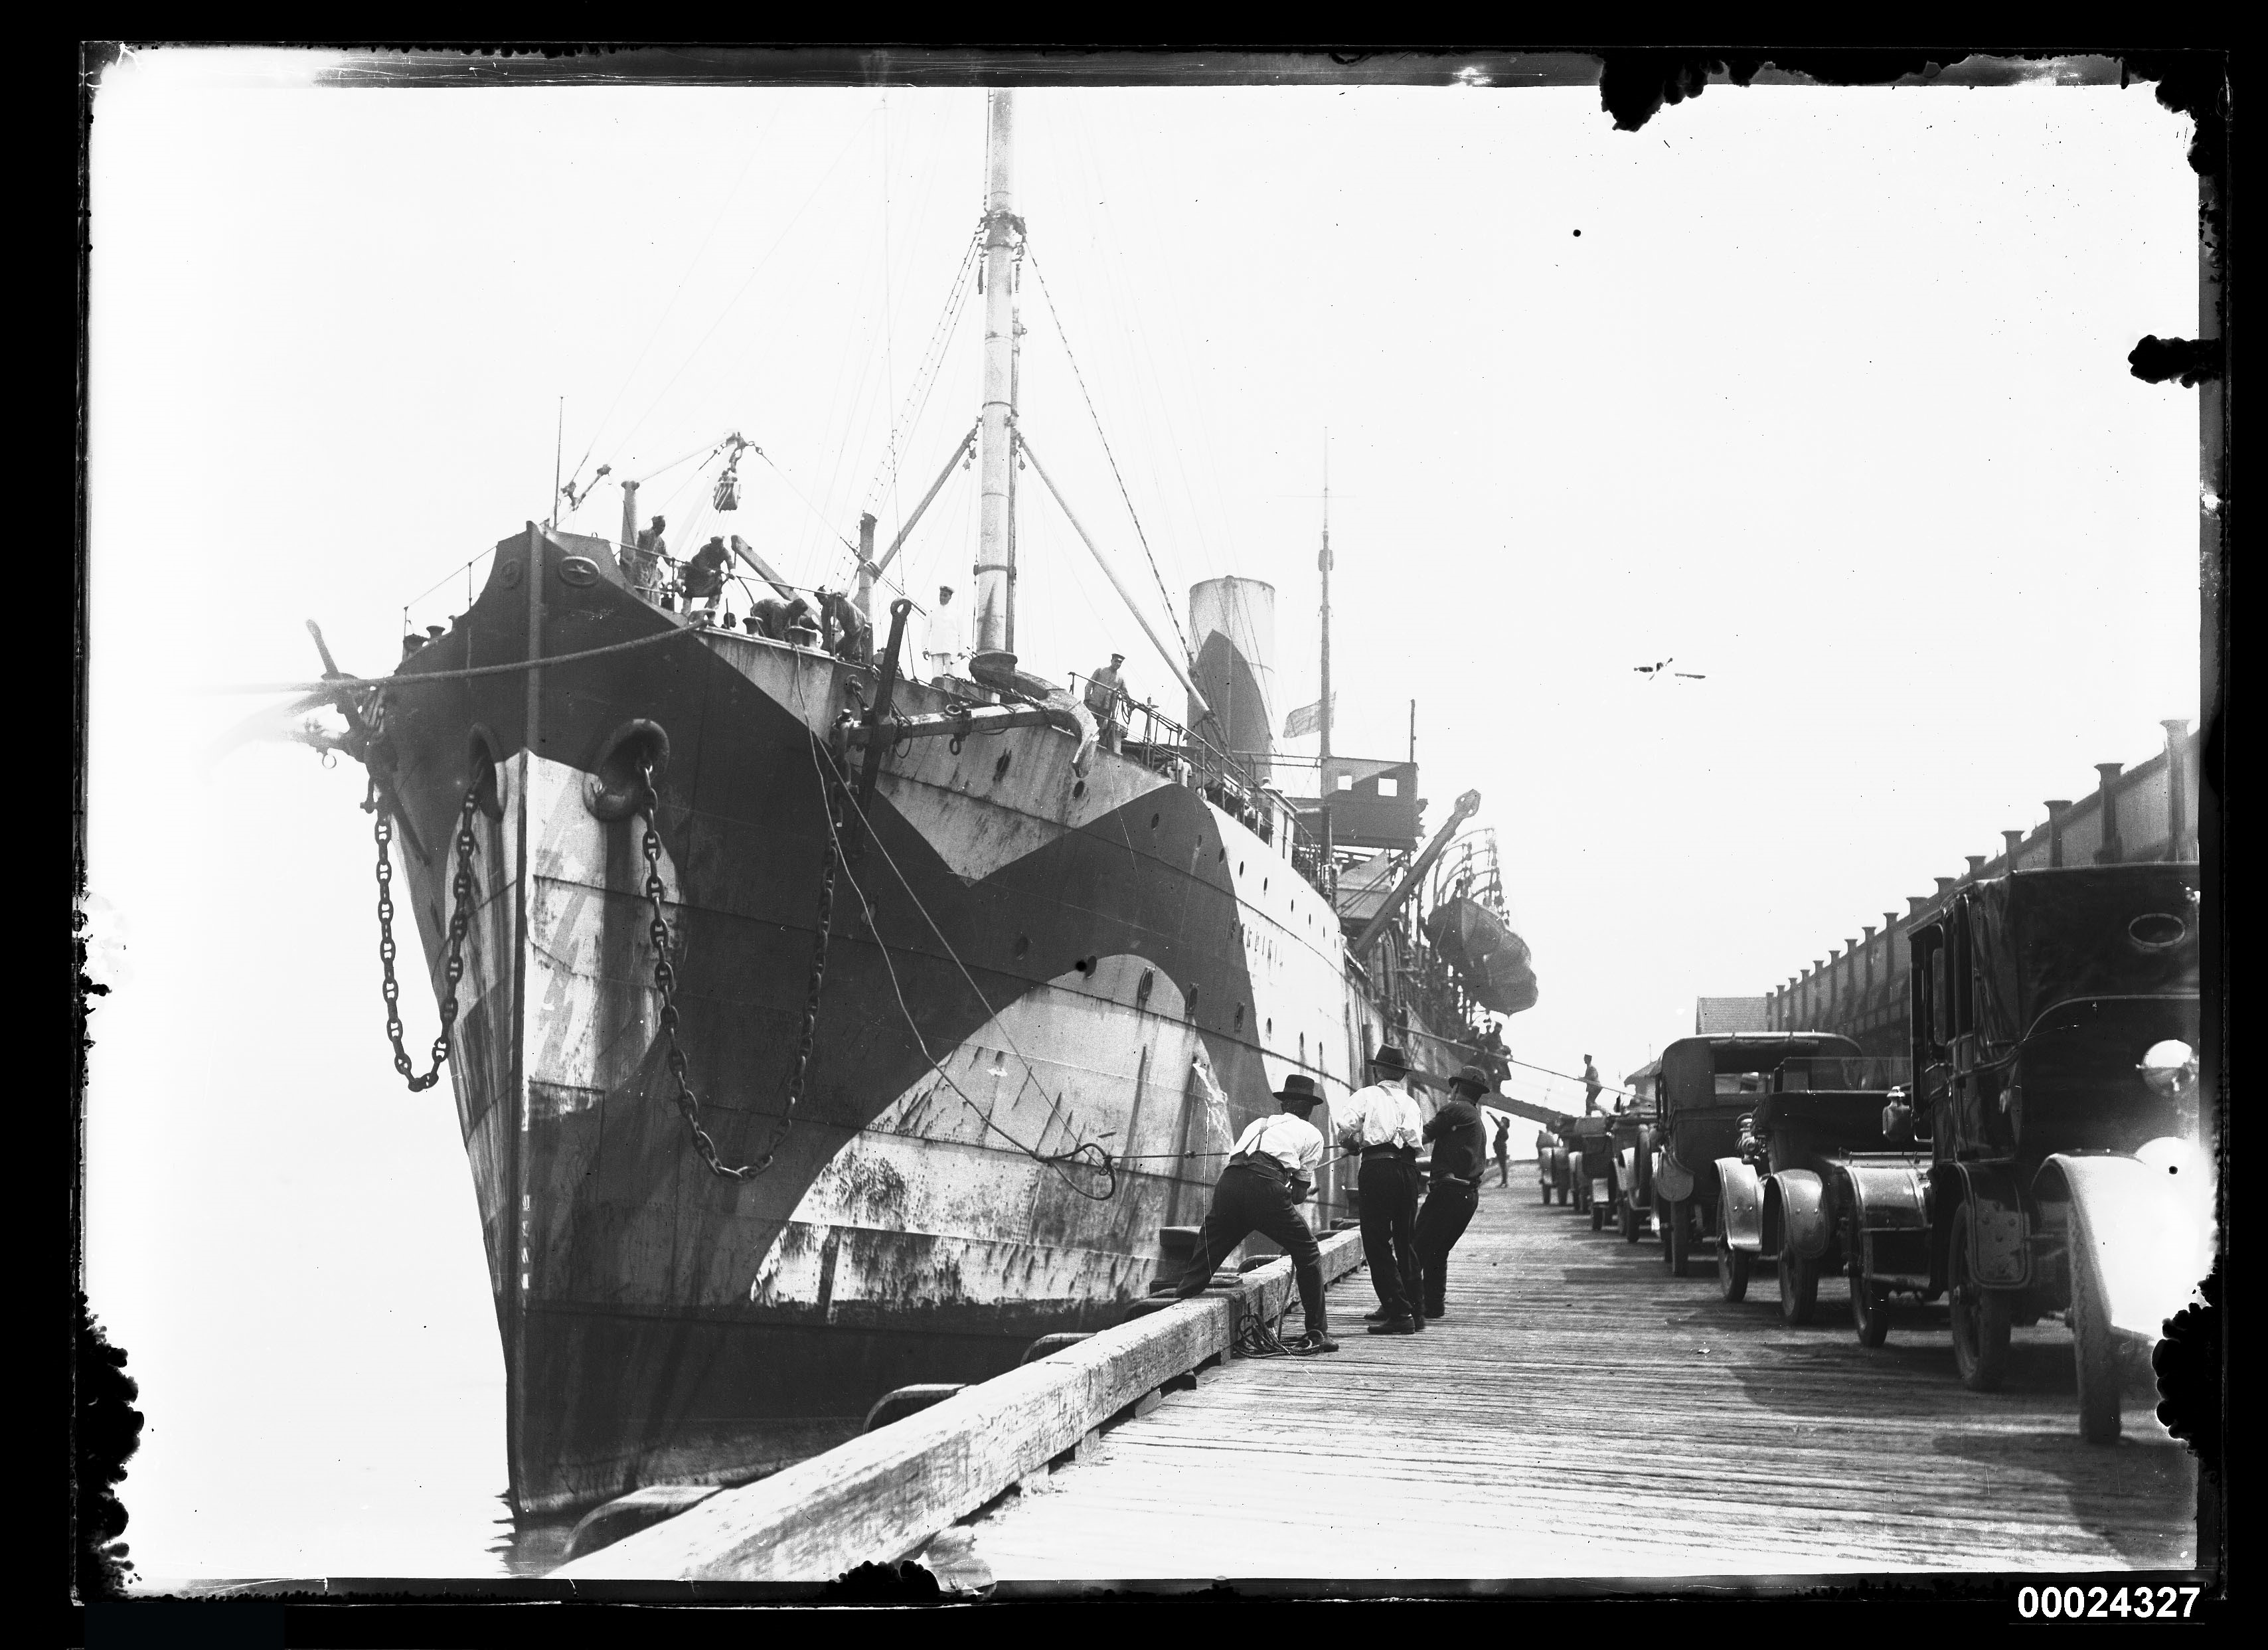 P&O Line steamship SARDINIA in WWI dazzle camouflage, ANMM Collection